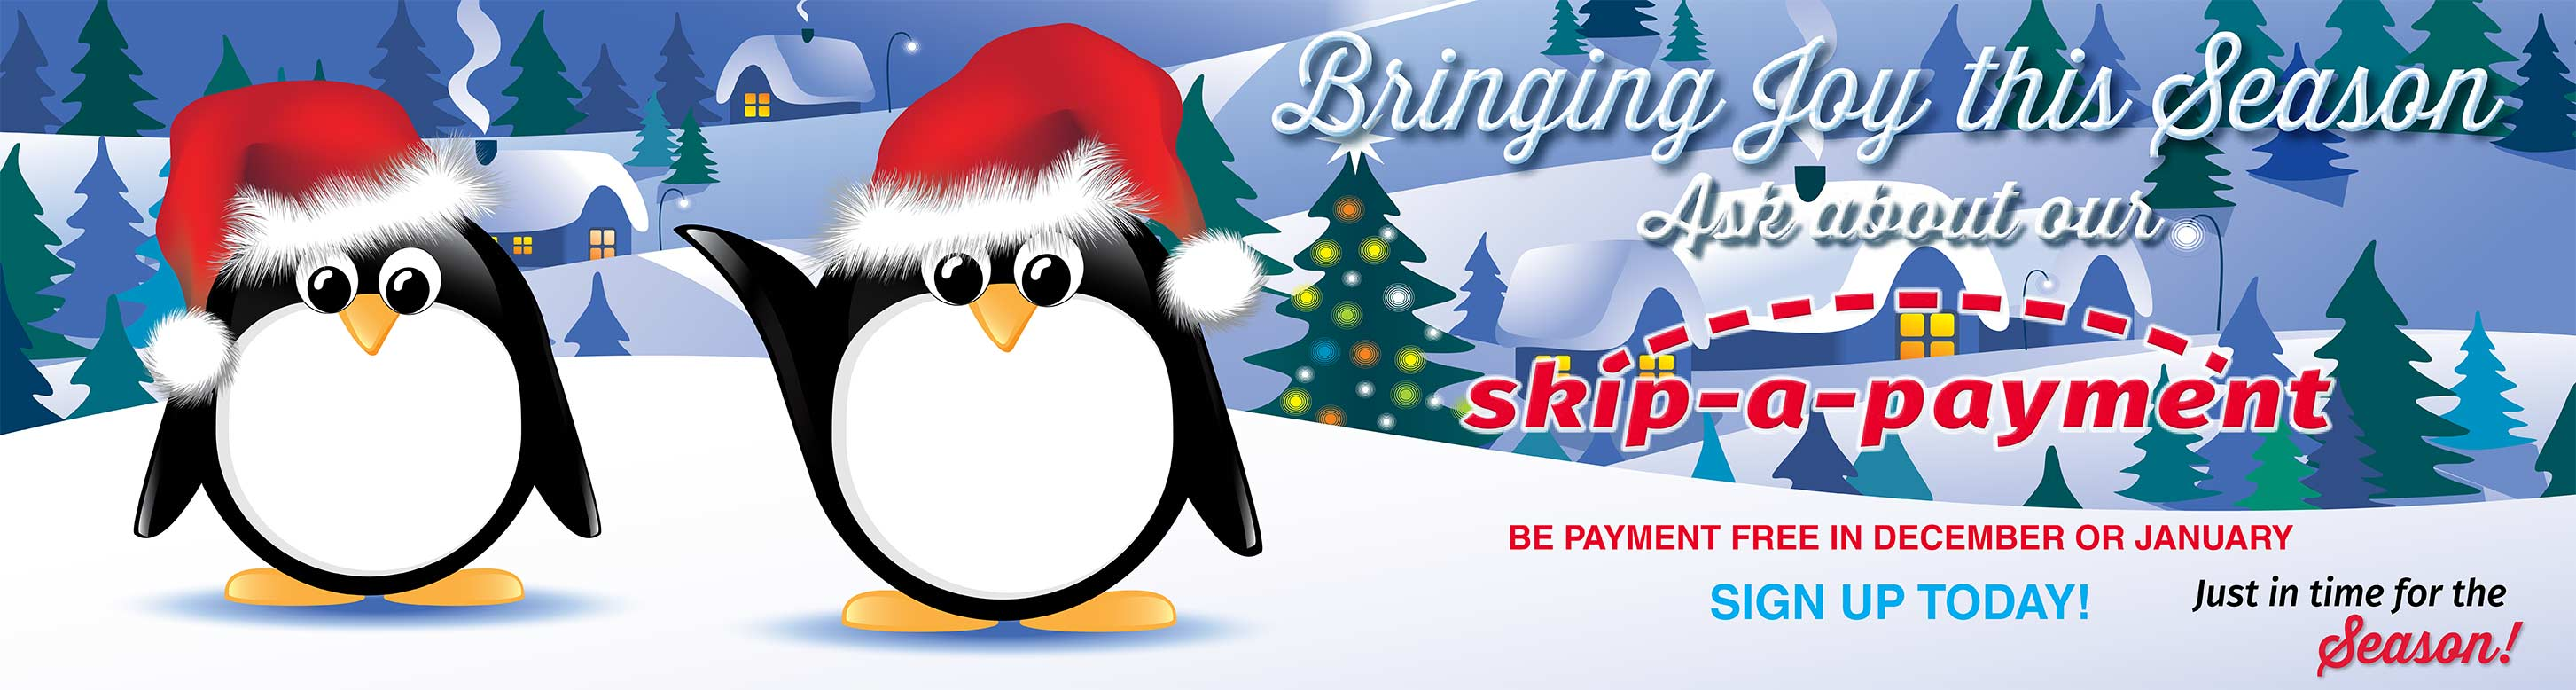 Bringing Joy This Season. Ask about our Skip a Payment. Be payment free in December or January. Sign up today. Just in time for the season.